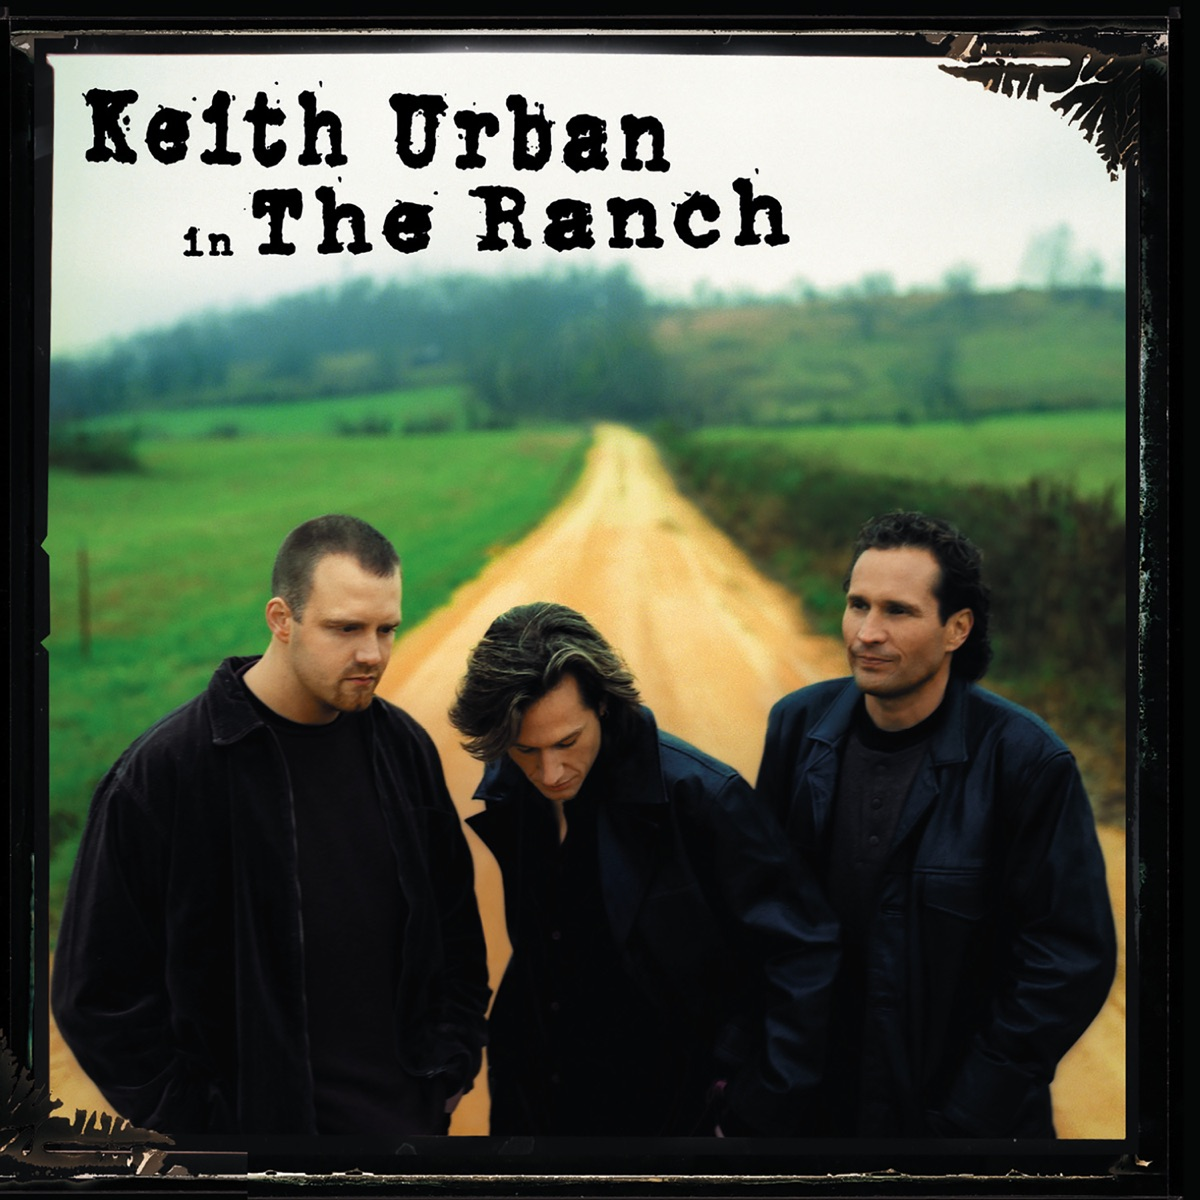 Keith Urban in the Ranch Keith Urban  The Ranch CD cover